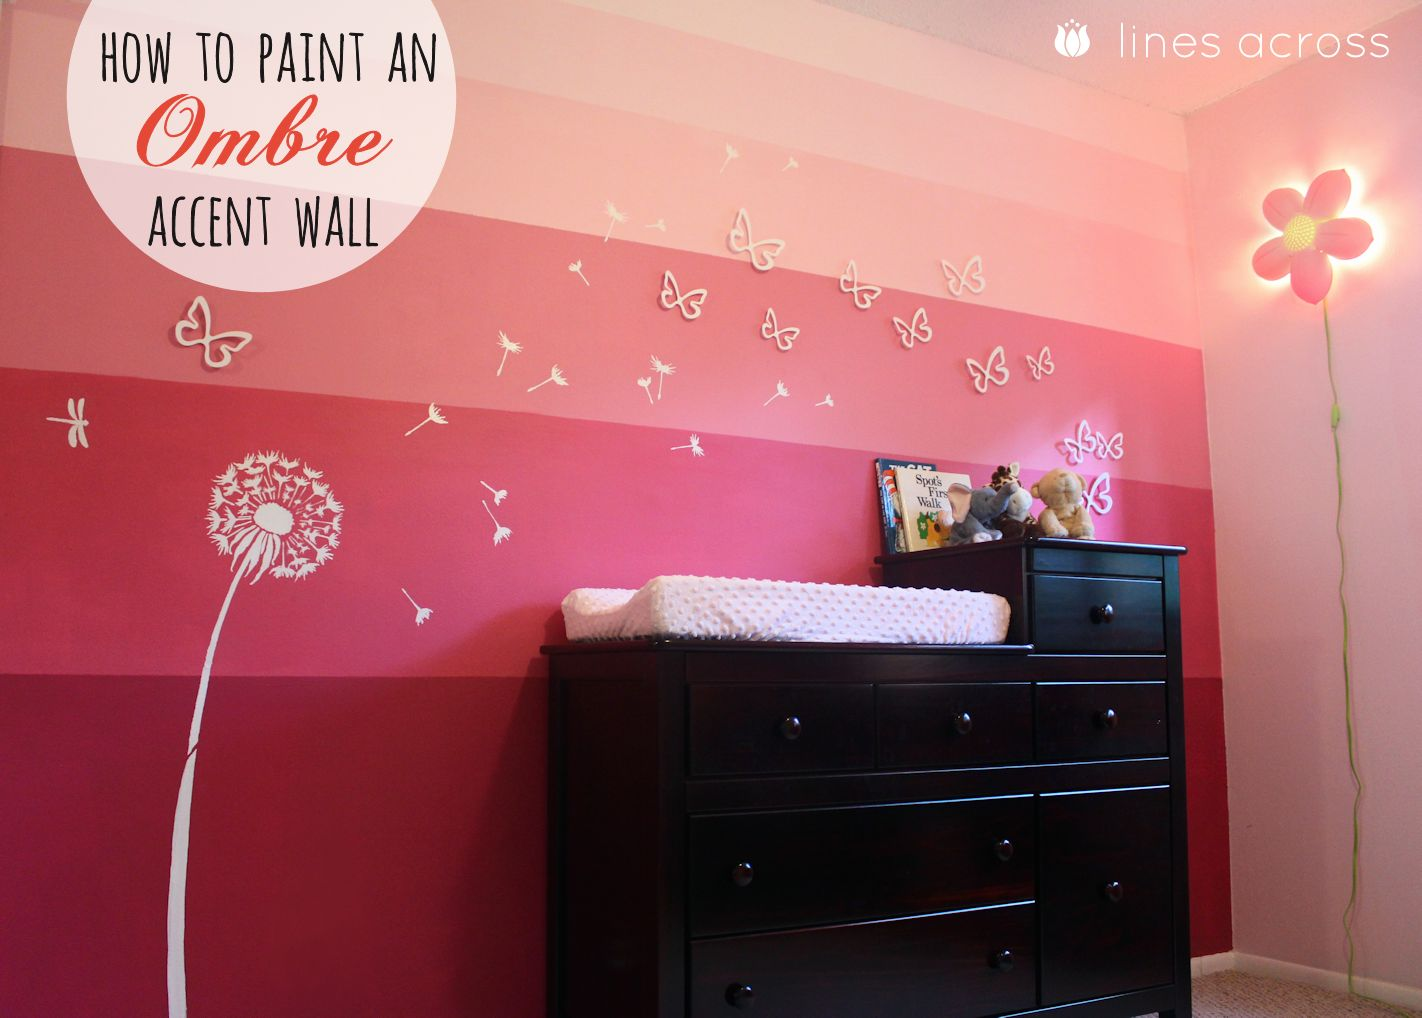 how to paint an ombre accent wall - lines across